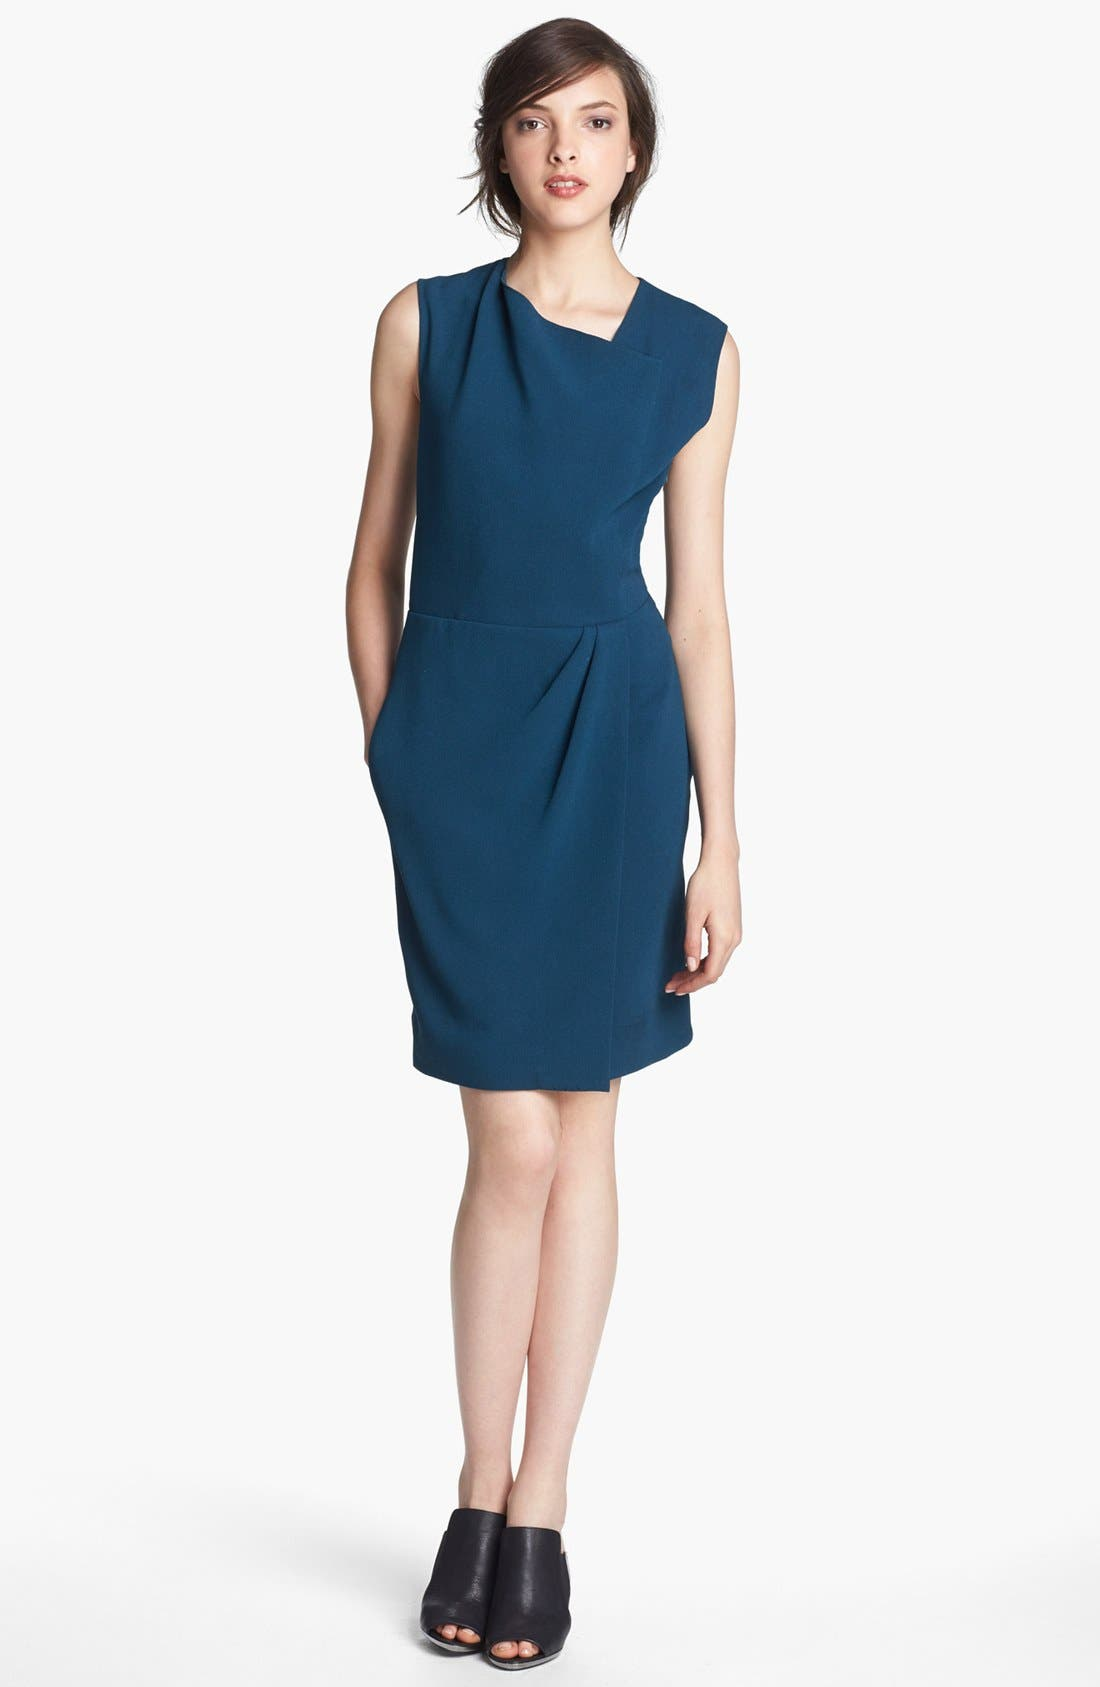 Main Image - 3.1 Phillip Lim Asymmetrical Drape Dress